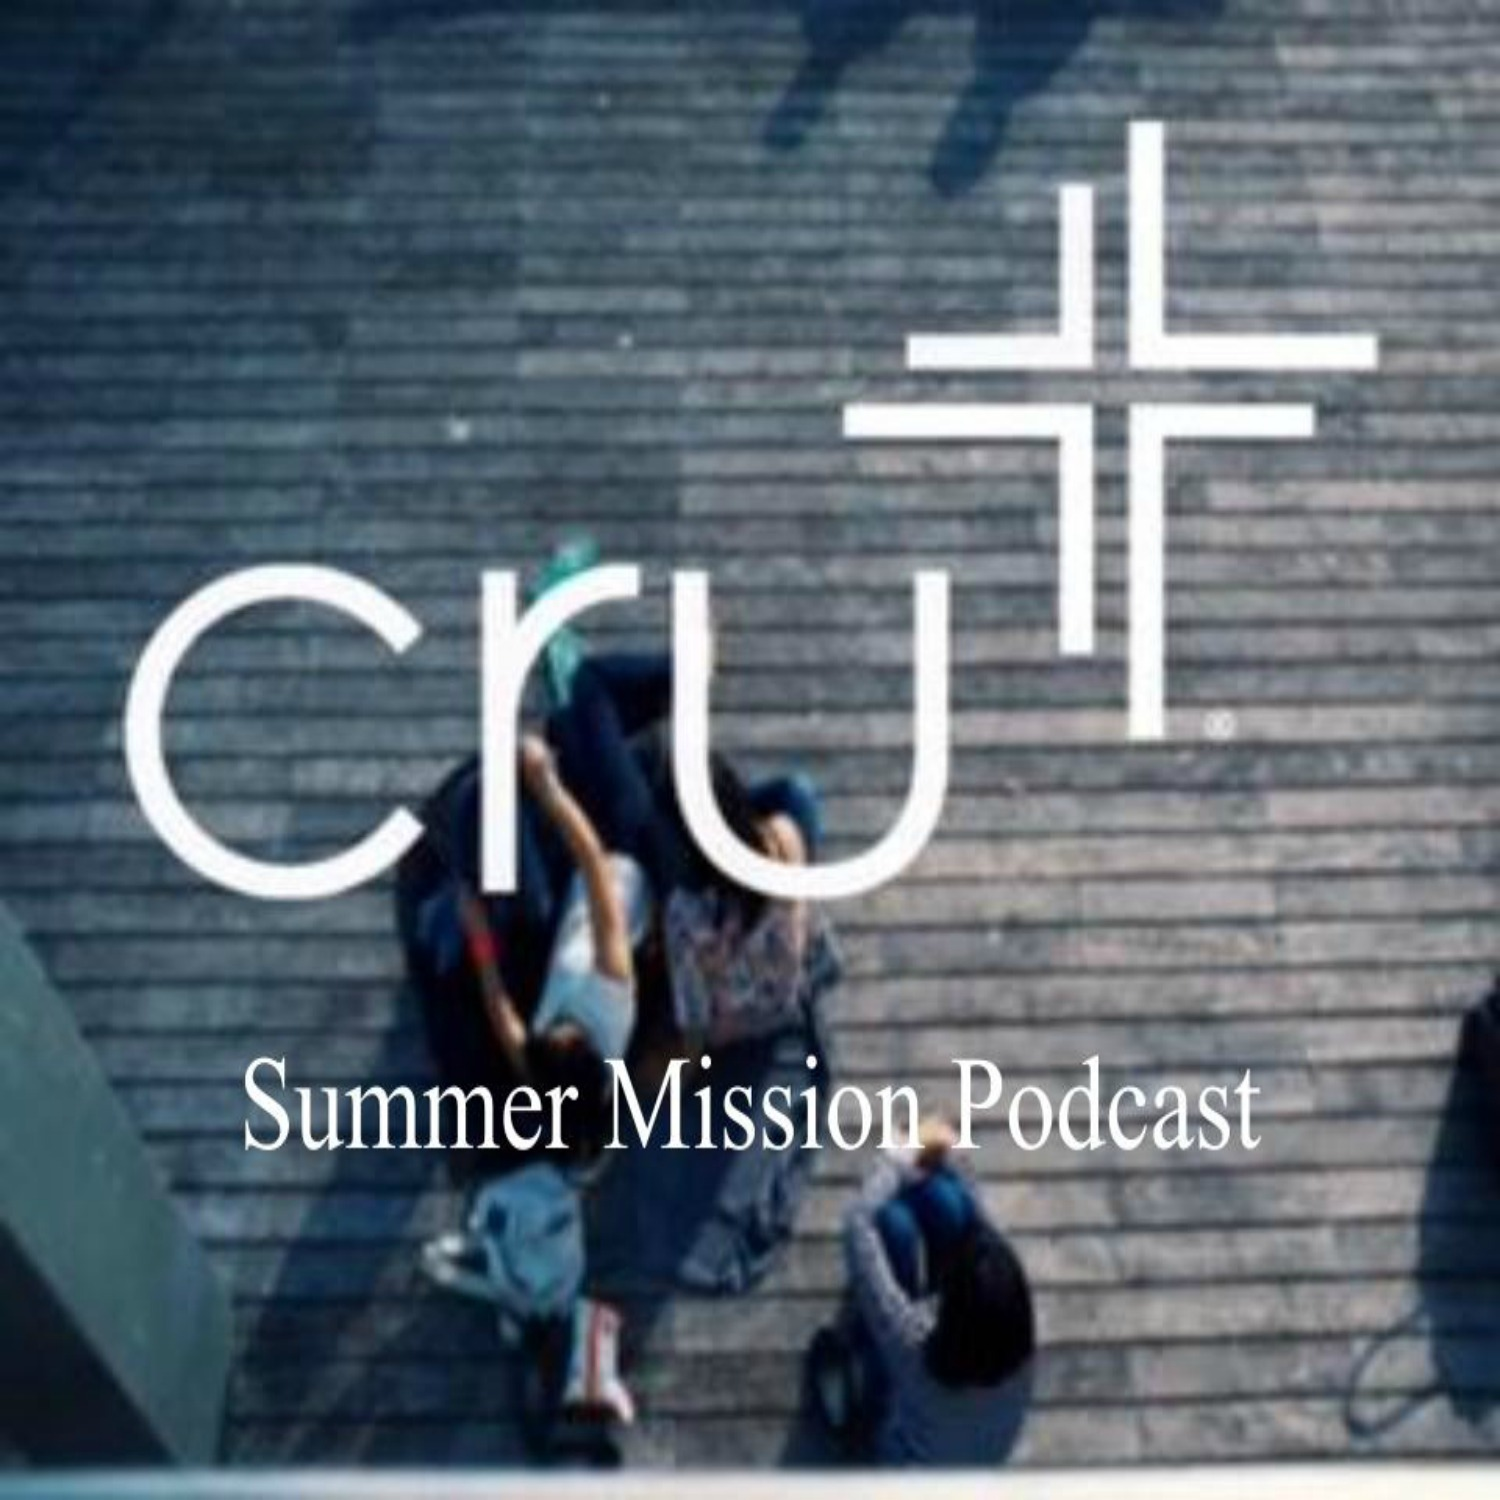 Cru Summer Mission Podcast - MergUs Media